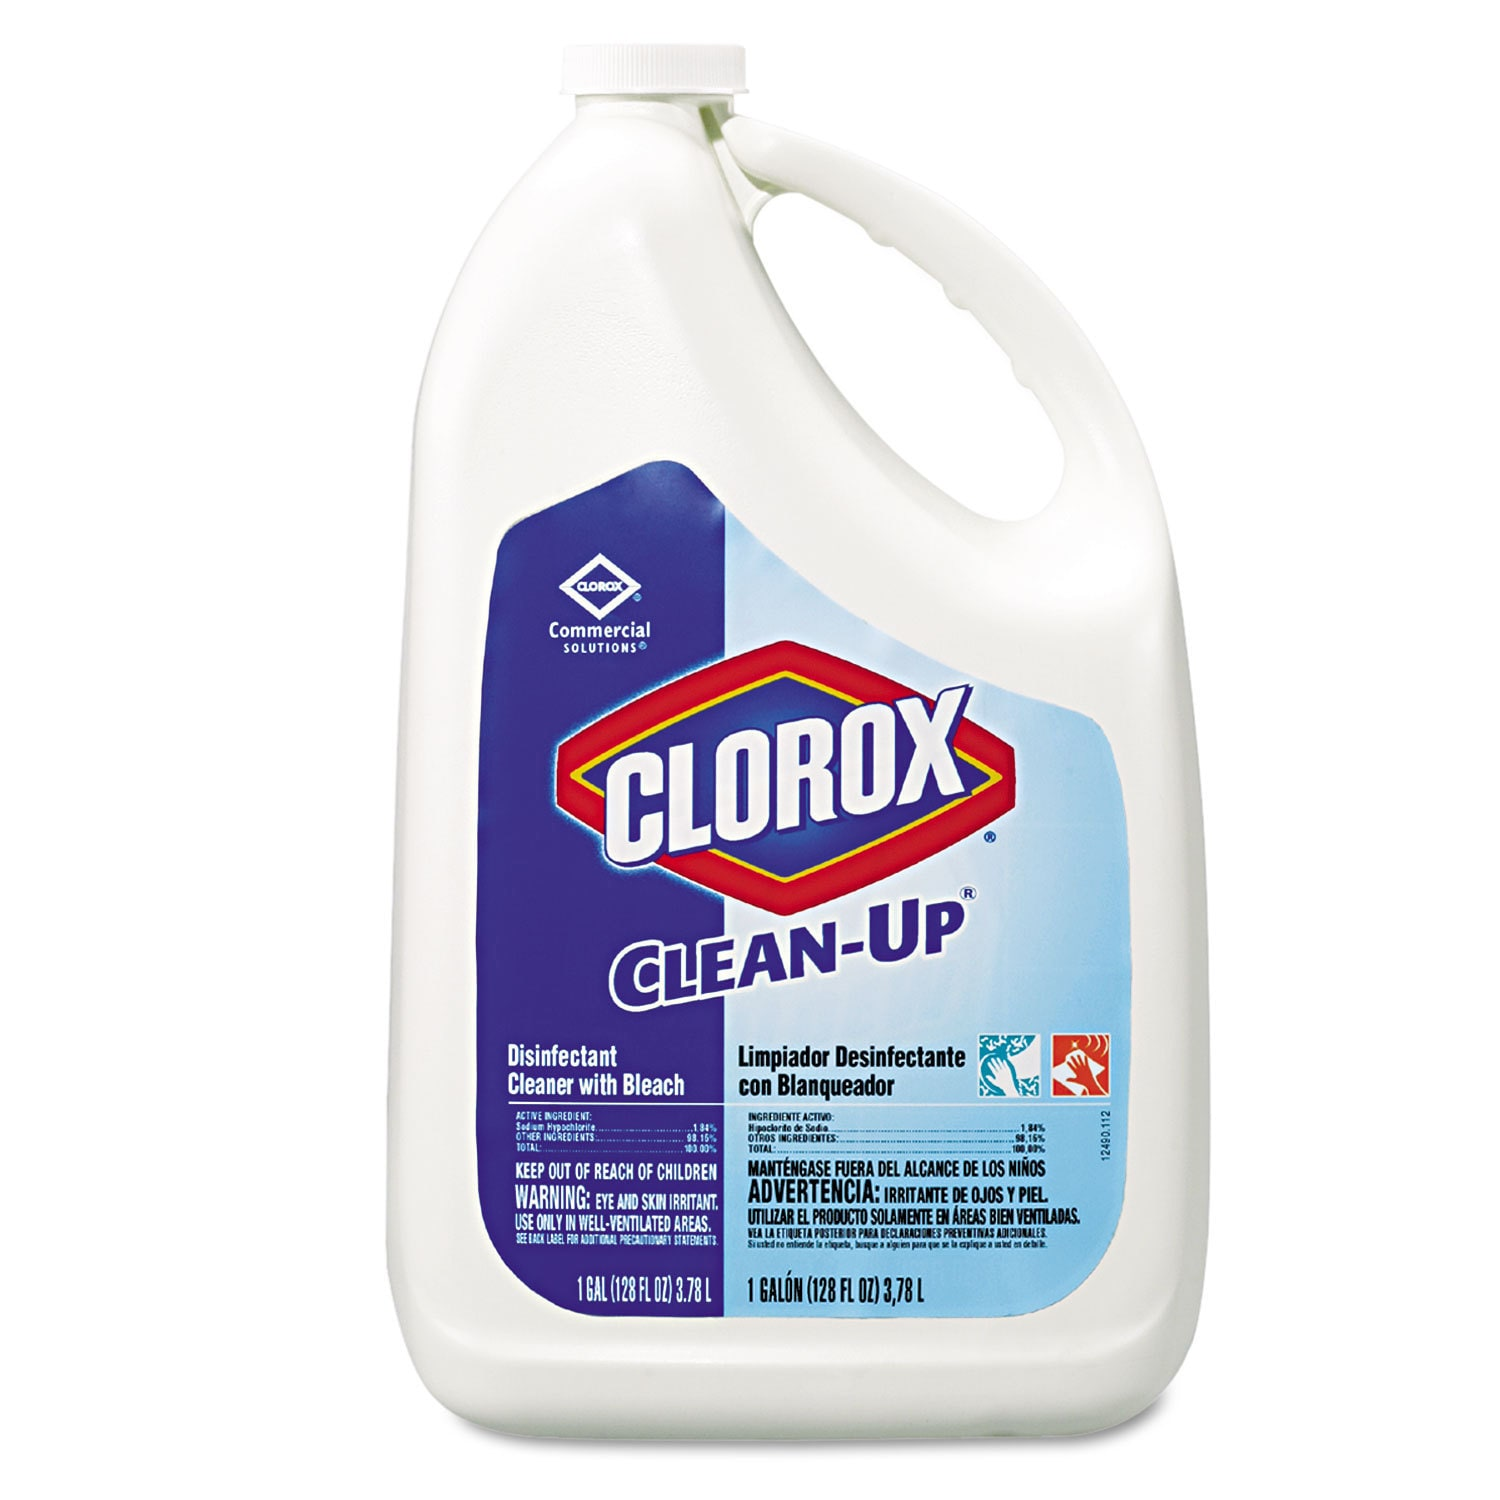 CLOROX Clean-Up Disinfectant Bleach Cleaner (White)